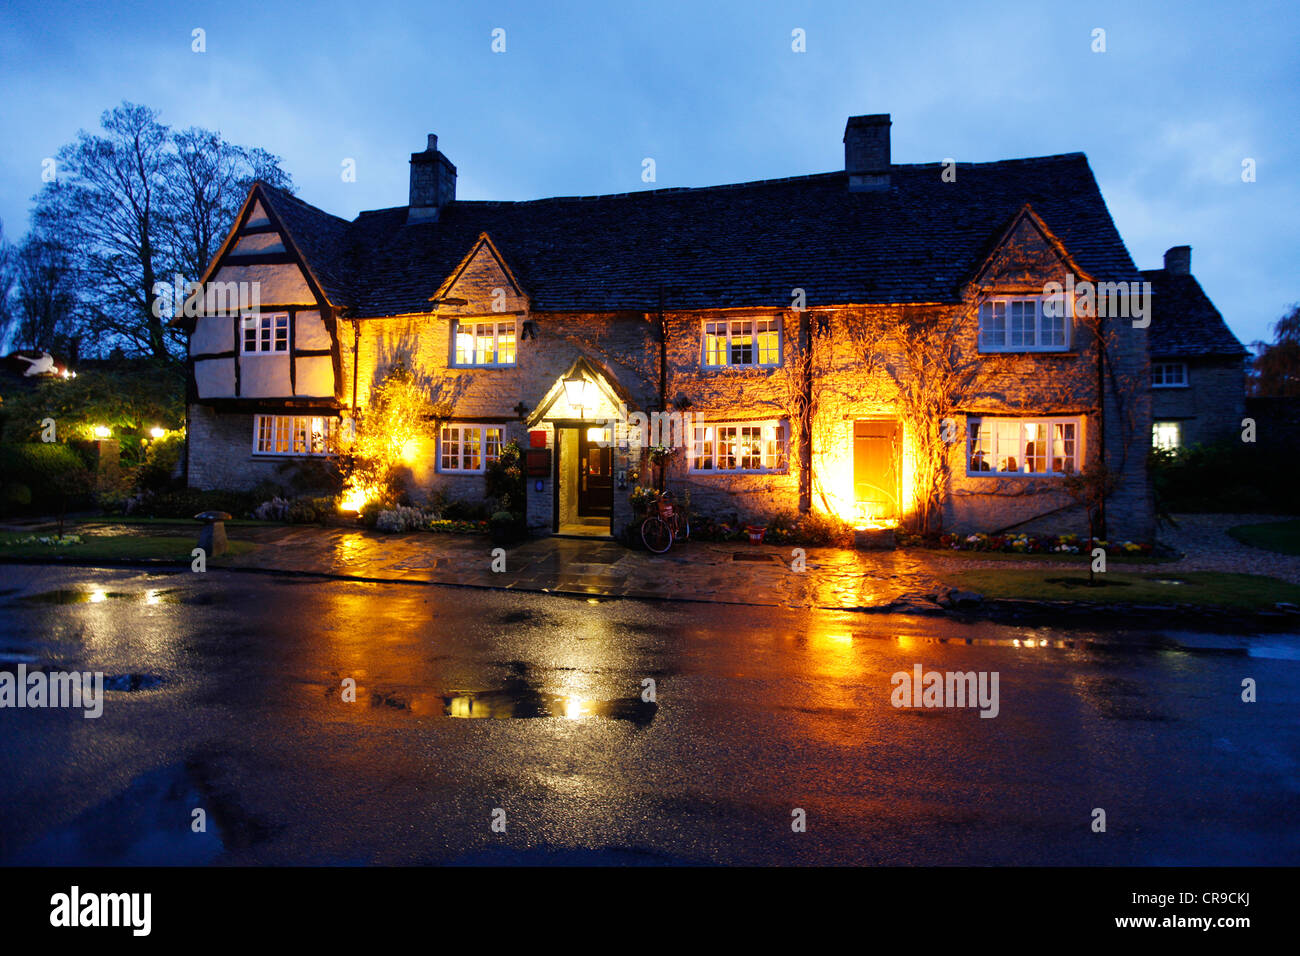 Historical hotel and restaurant Old Swan and Minster Mill, in Minster Mill Lovell, Oxfordshire, UK, Europe. - Stock Image